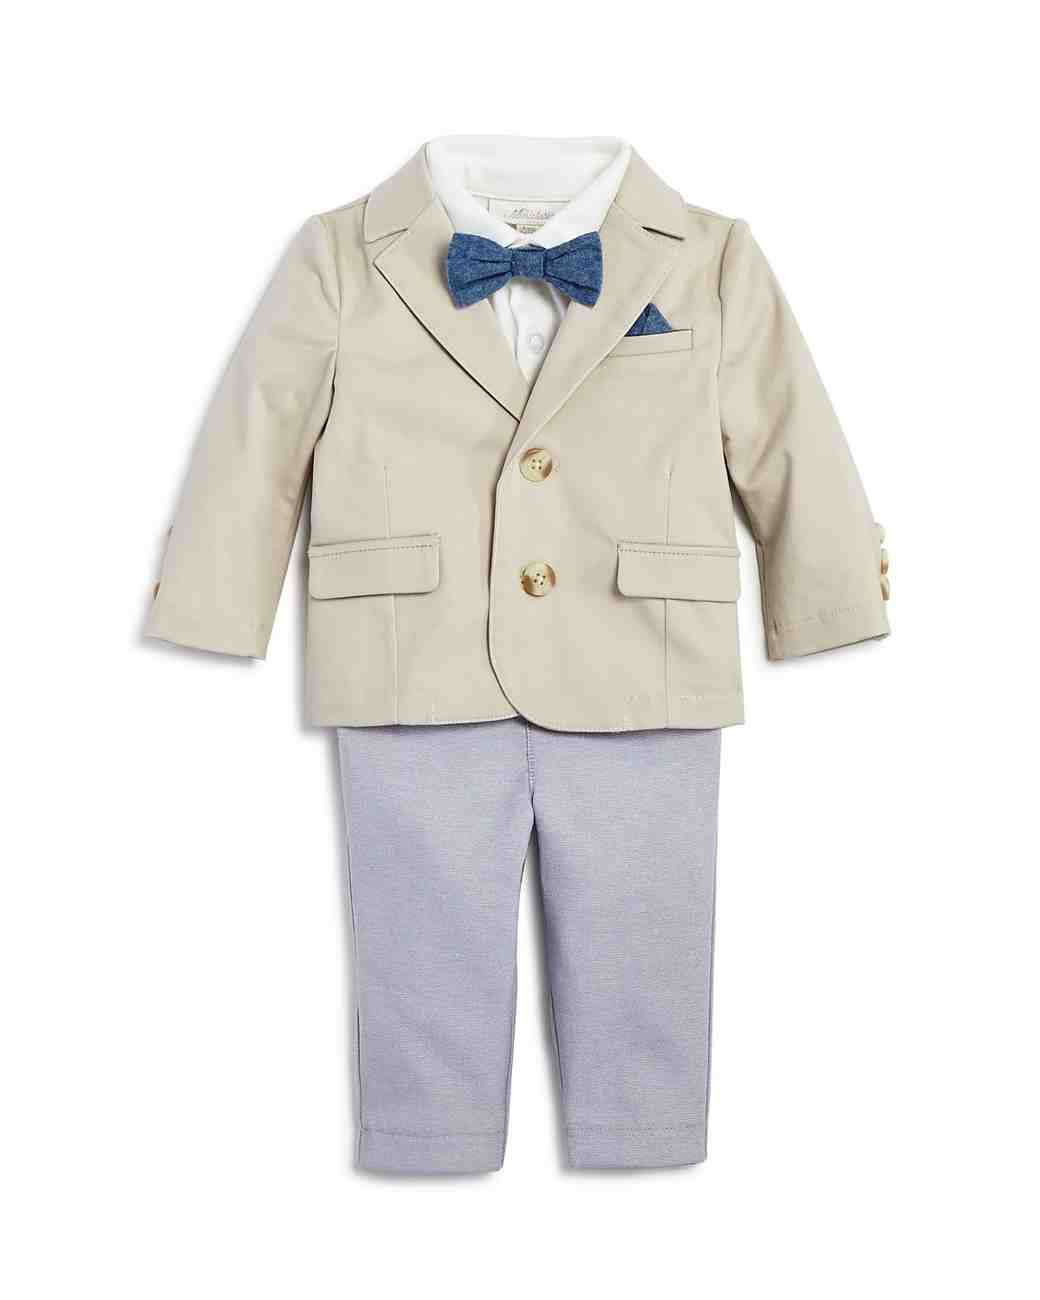 Spring Ring Bearer Outfits, Miniclasix Suit